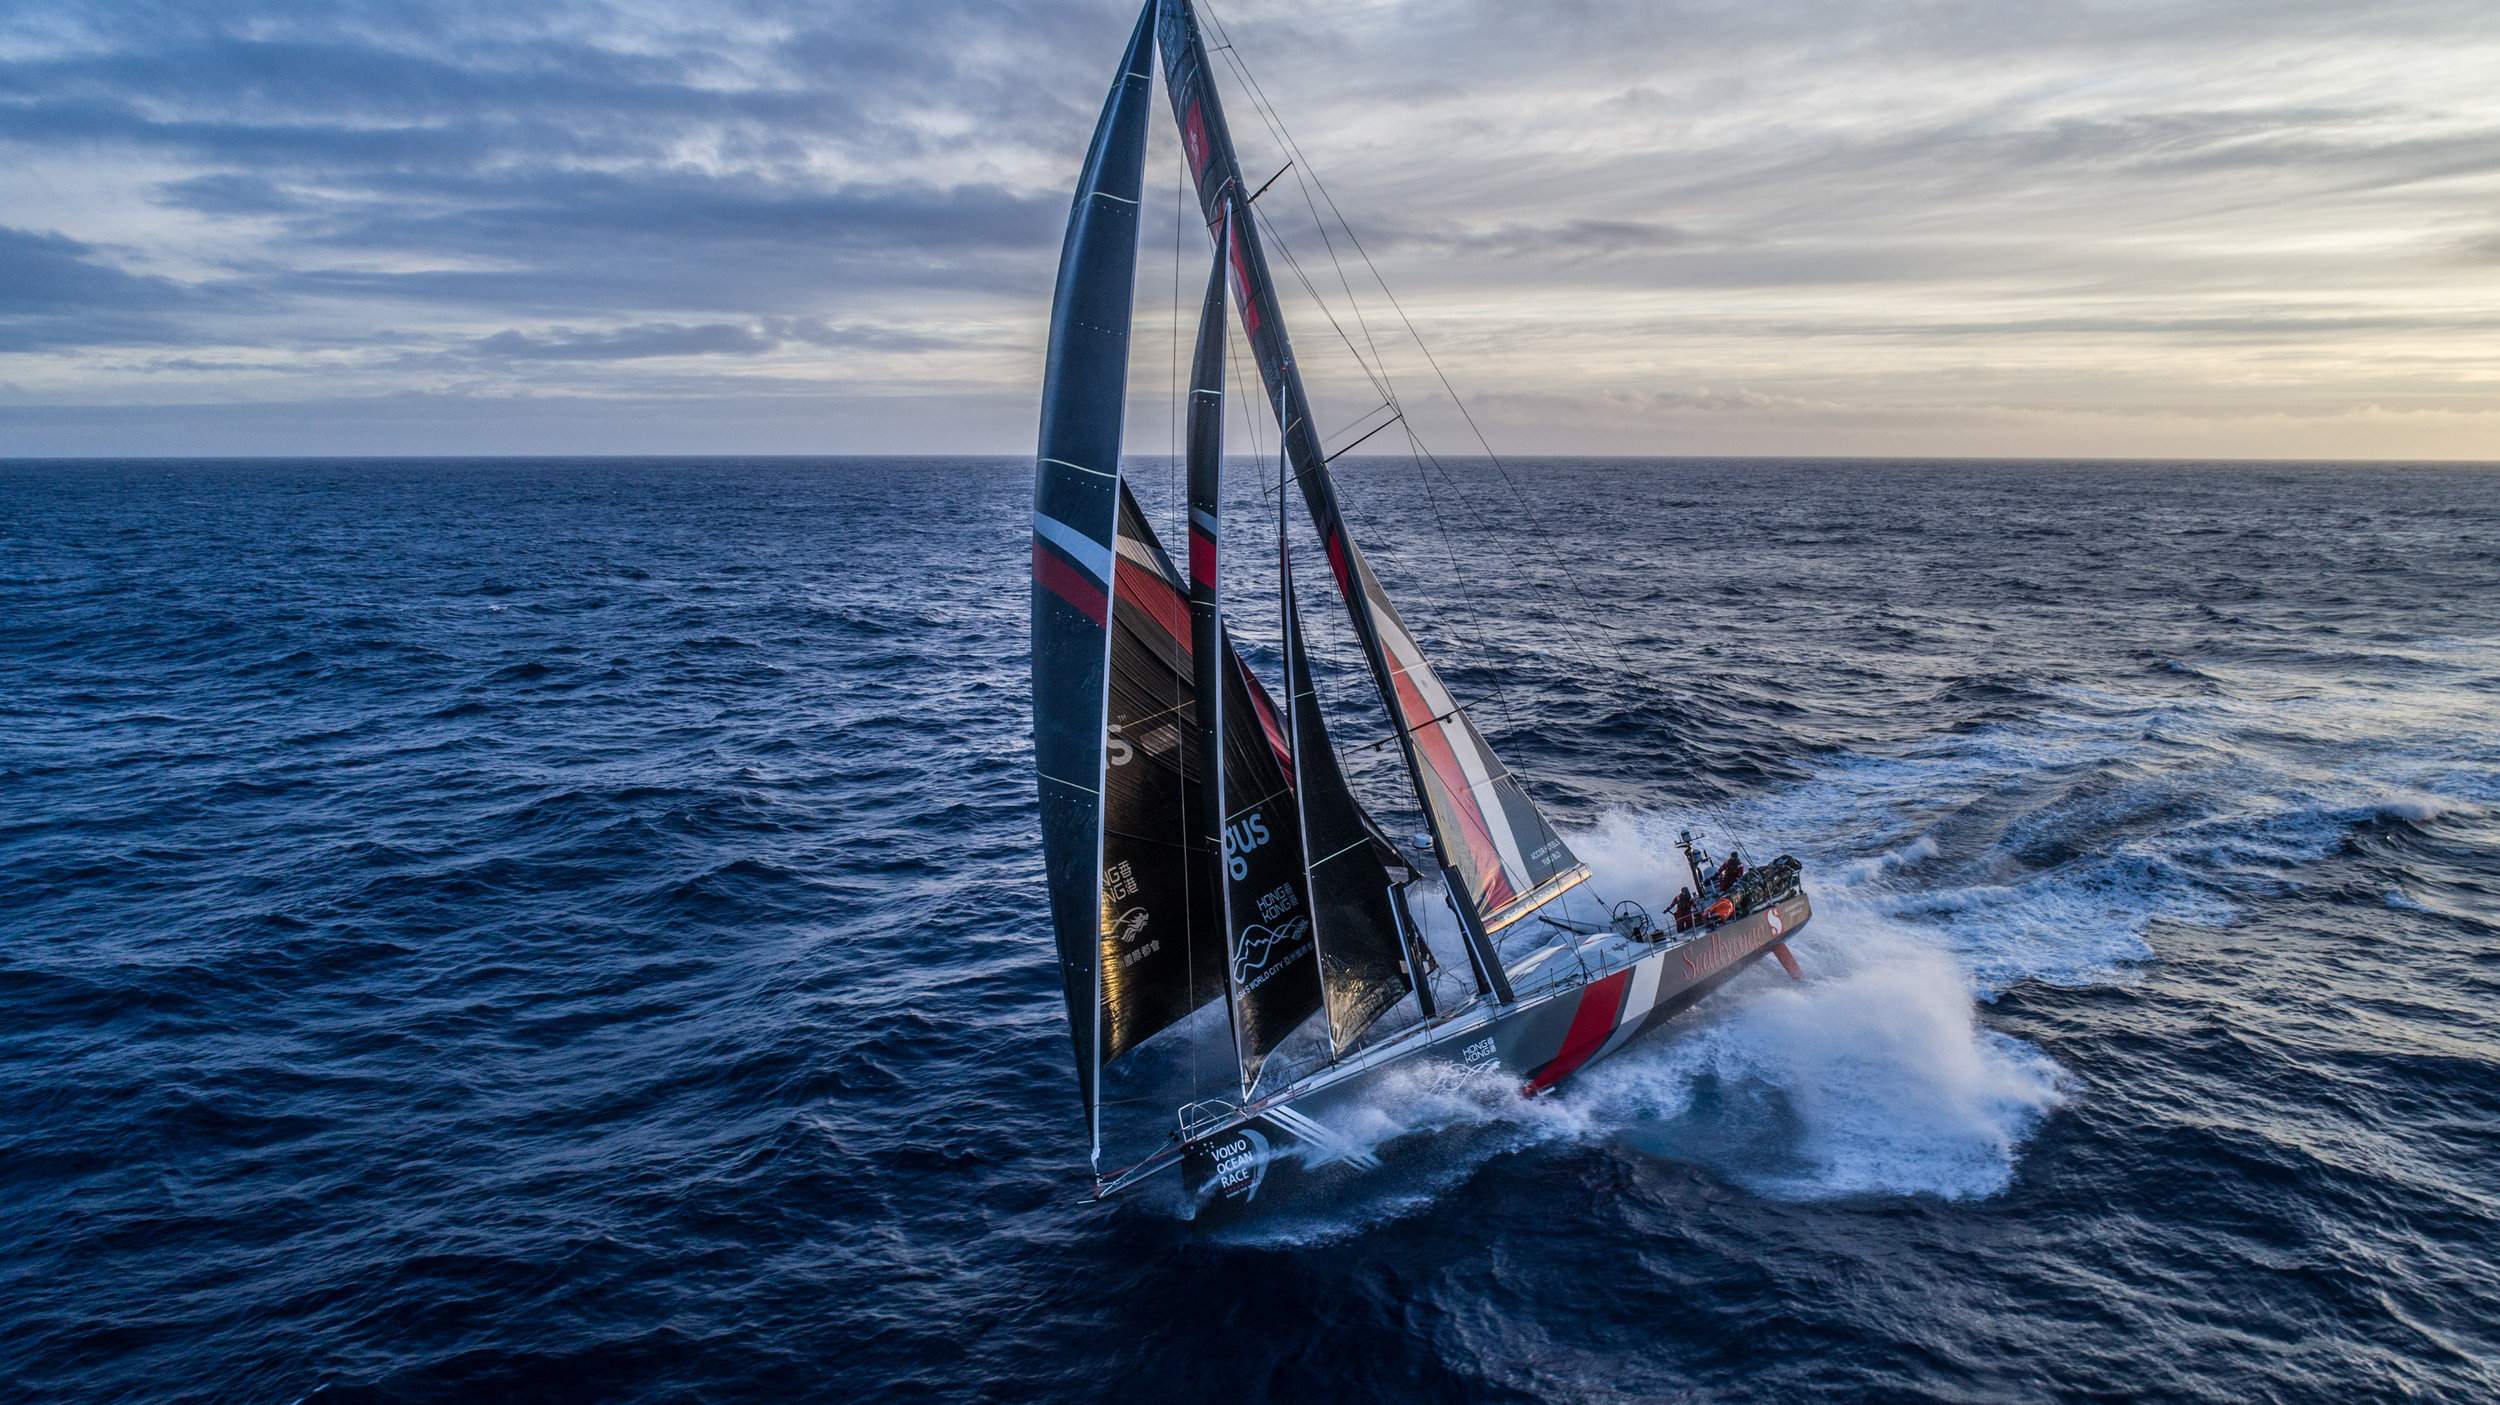 Volvo Ocean Race (2017-18 edition)